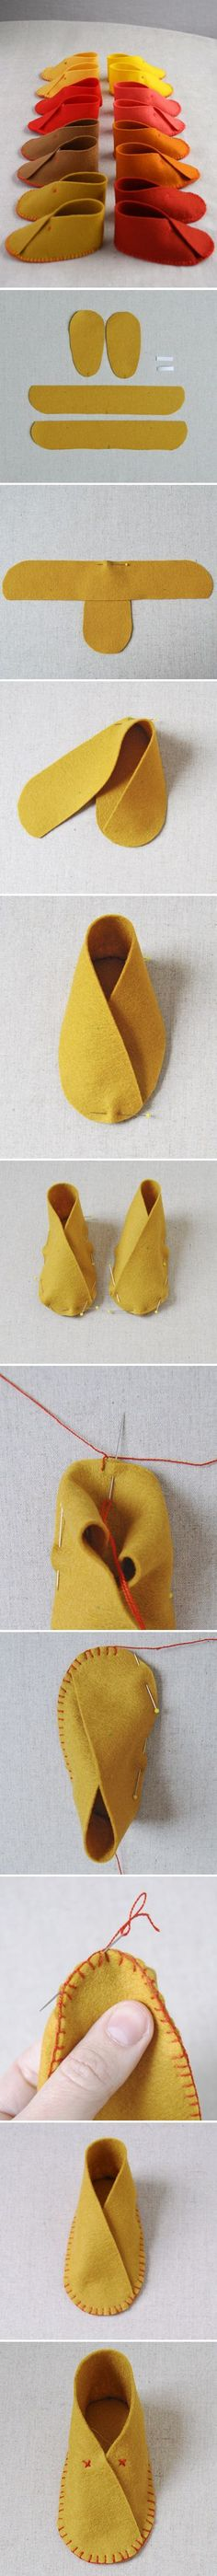 The Cutest Felt Baby Shoes #DIY #baby #crafts (I am SO making these for my future grandbabies.) <3